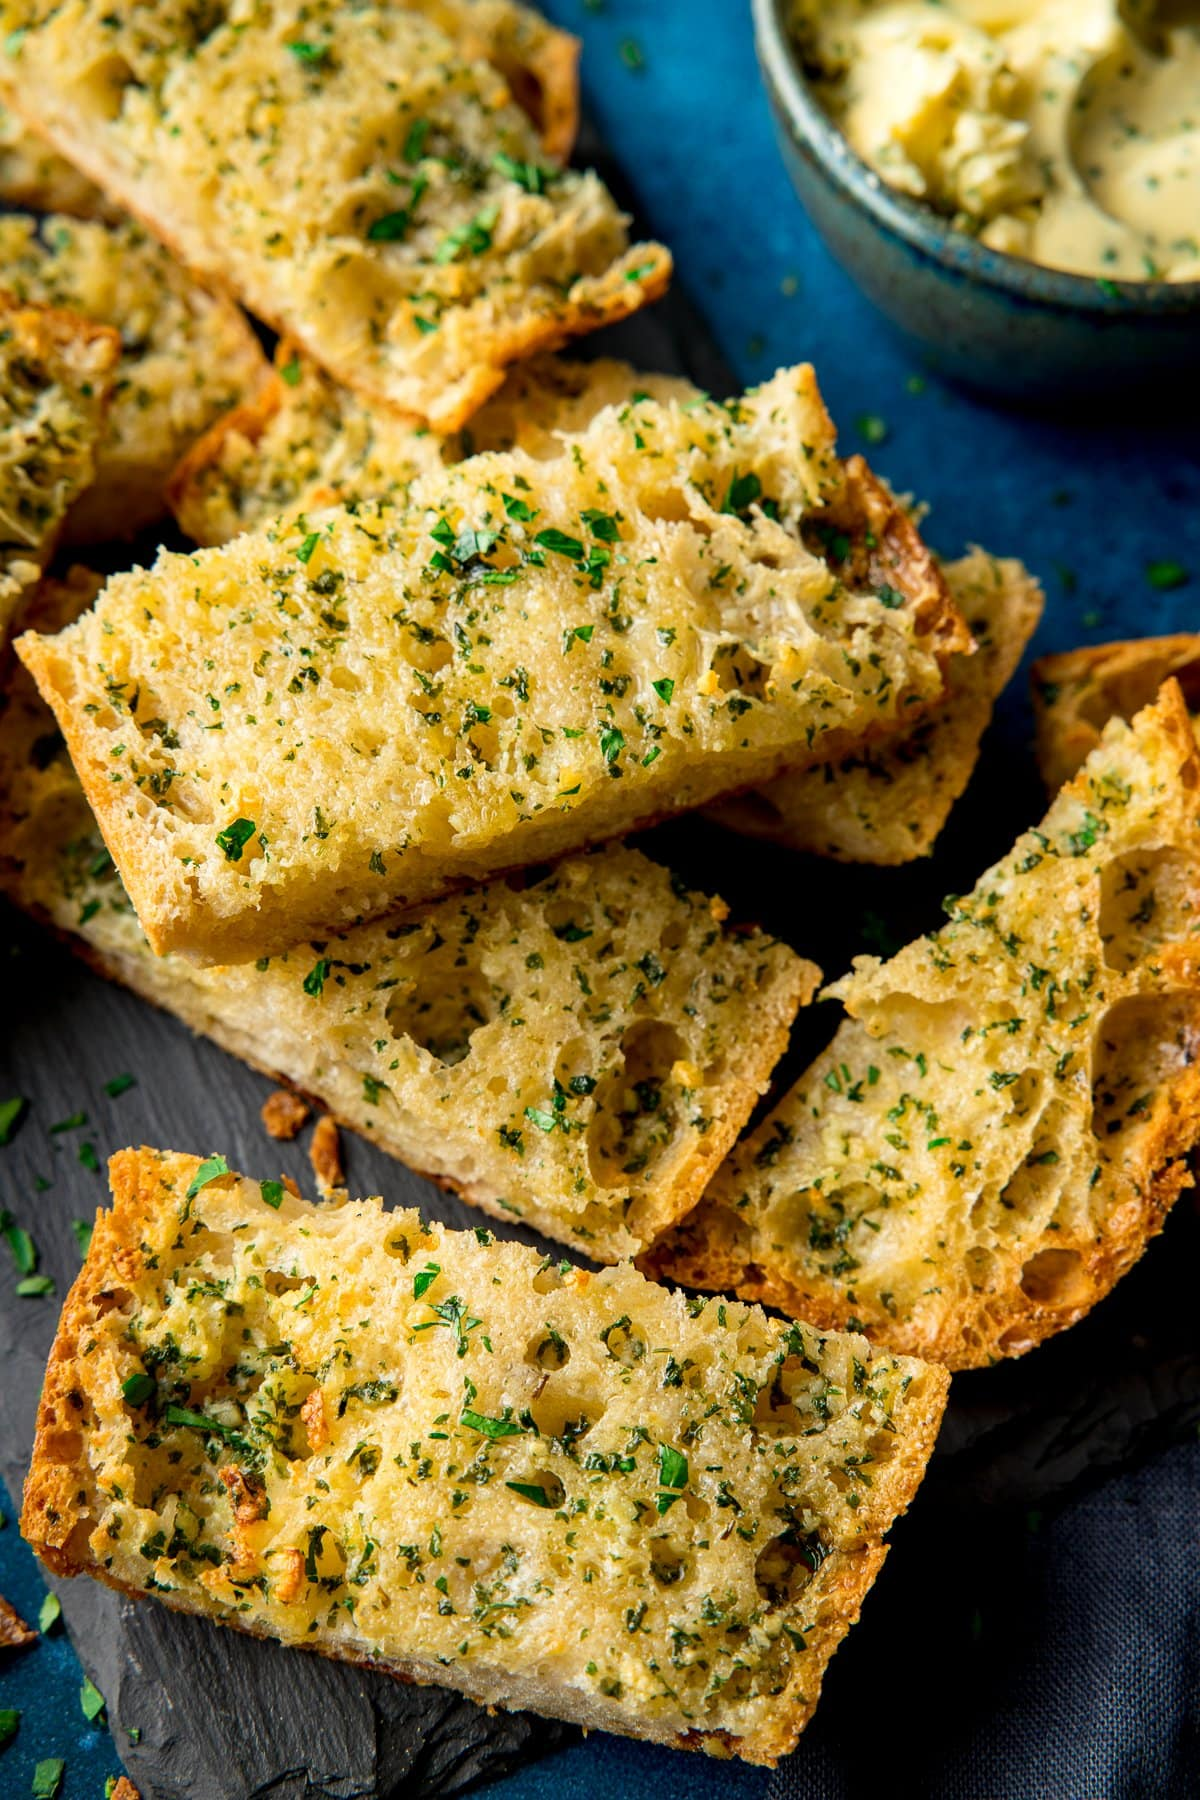 Slices of garlic bread on a piece of slate